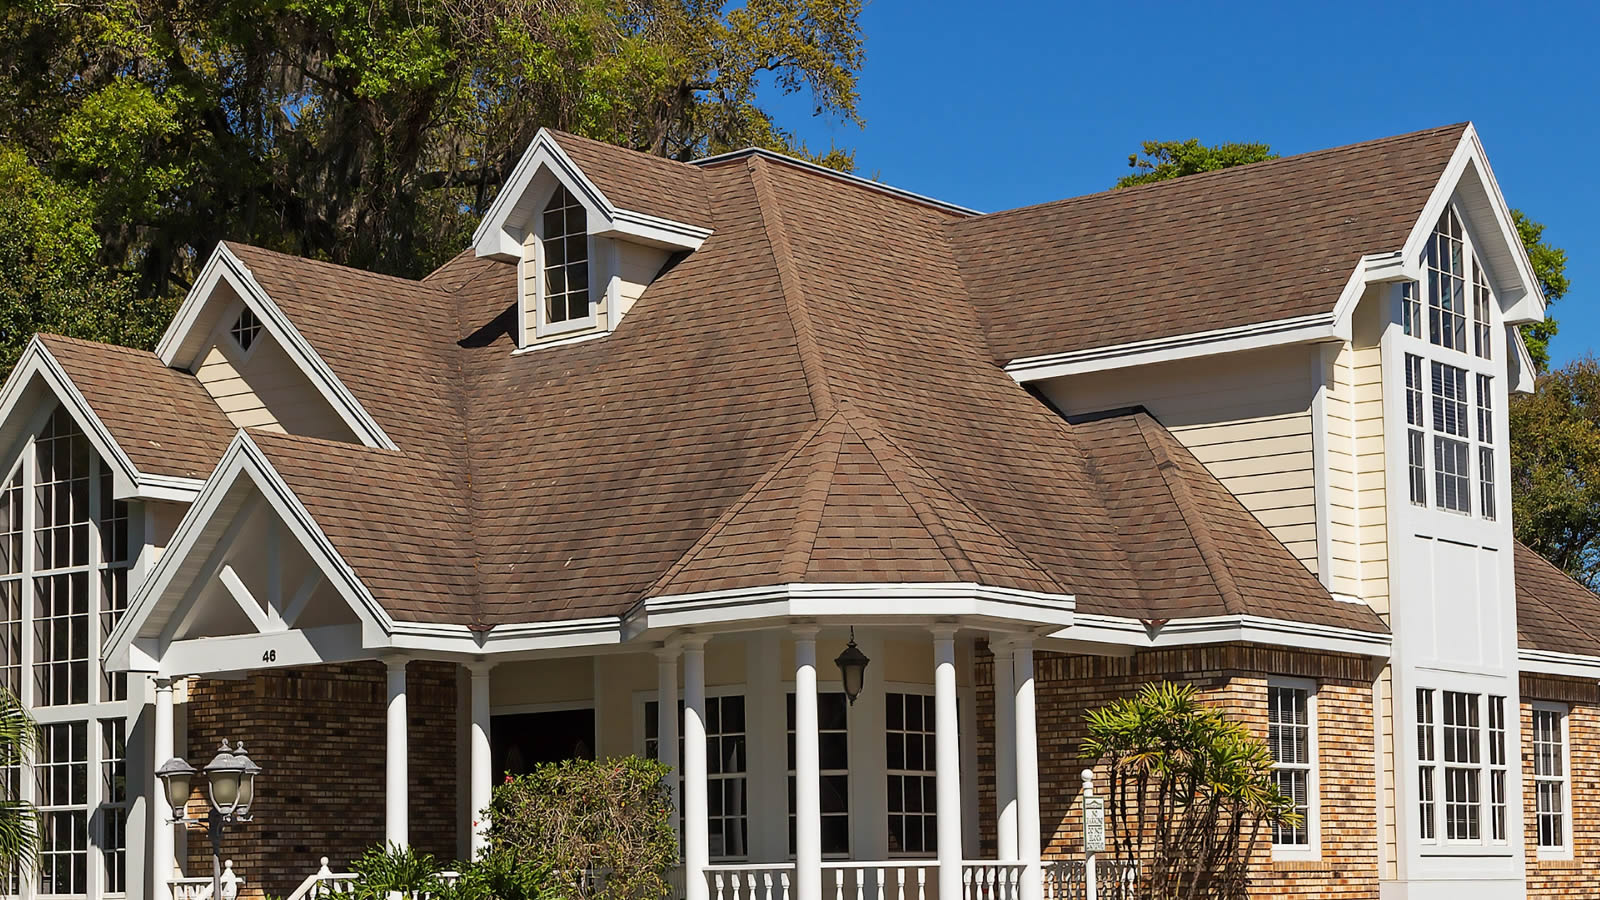 Local Suwanee Roofing Contractor